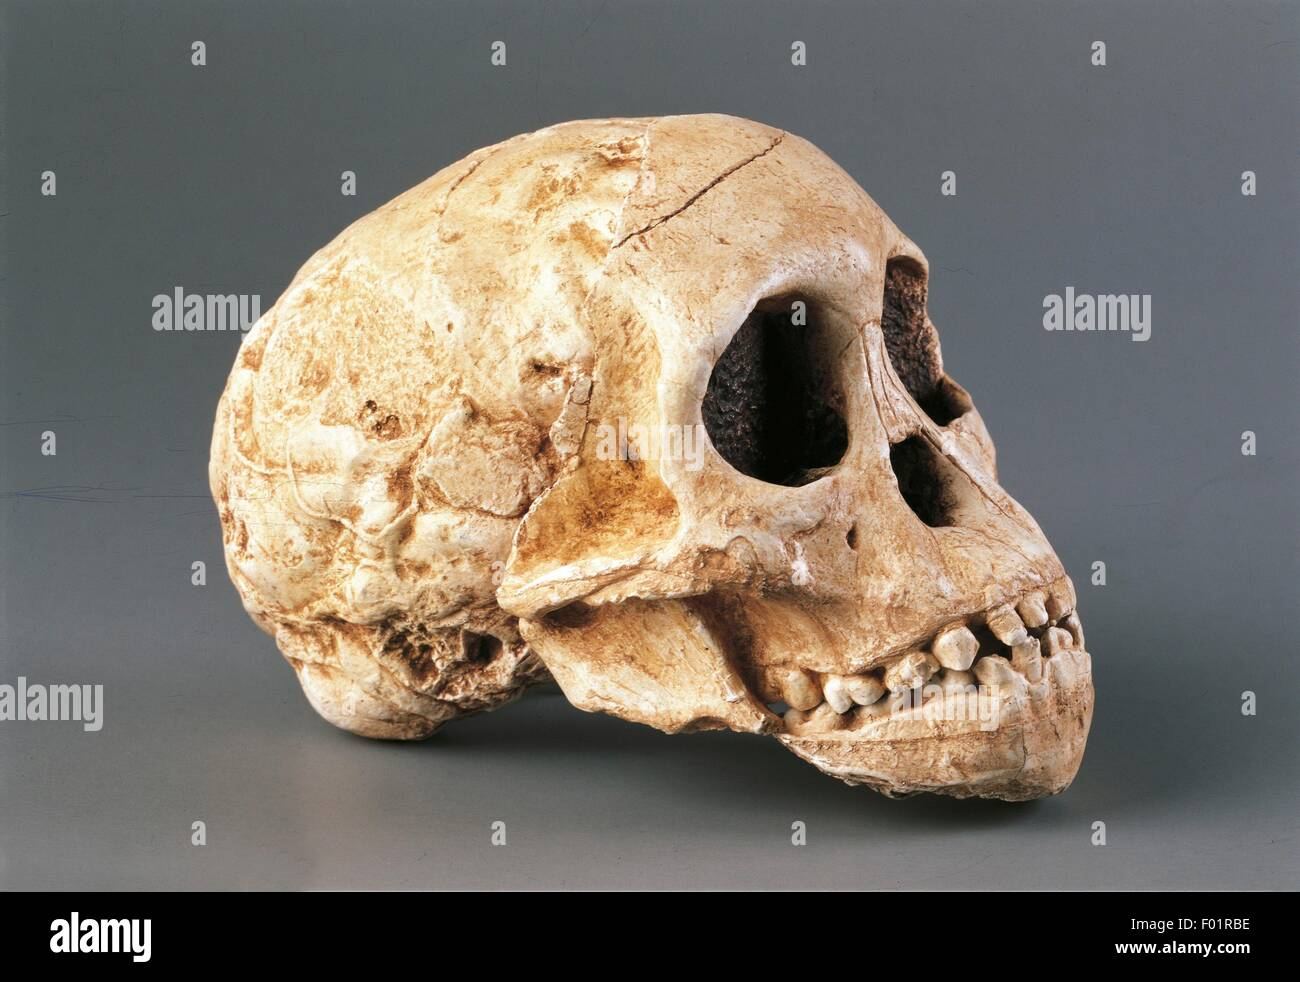 Anthropology - Skull of Gracile Australopithecine (Australopithecus Africanus). From South Africa, Taung. - Stock Image